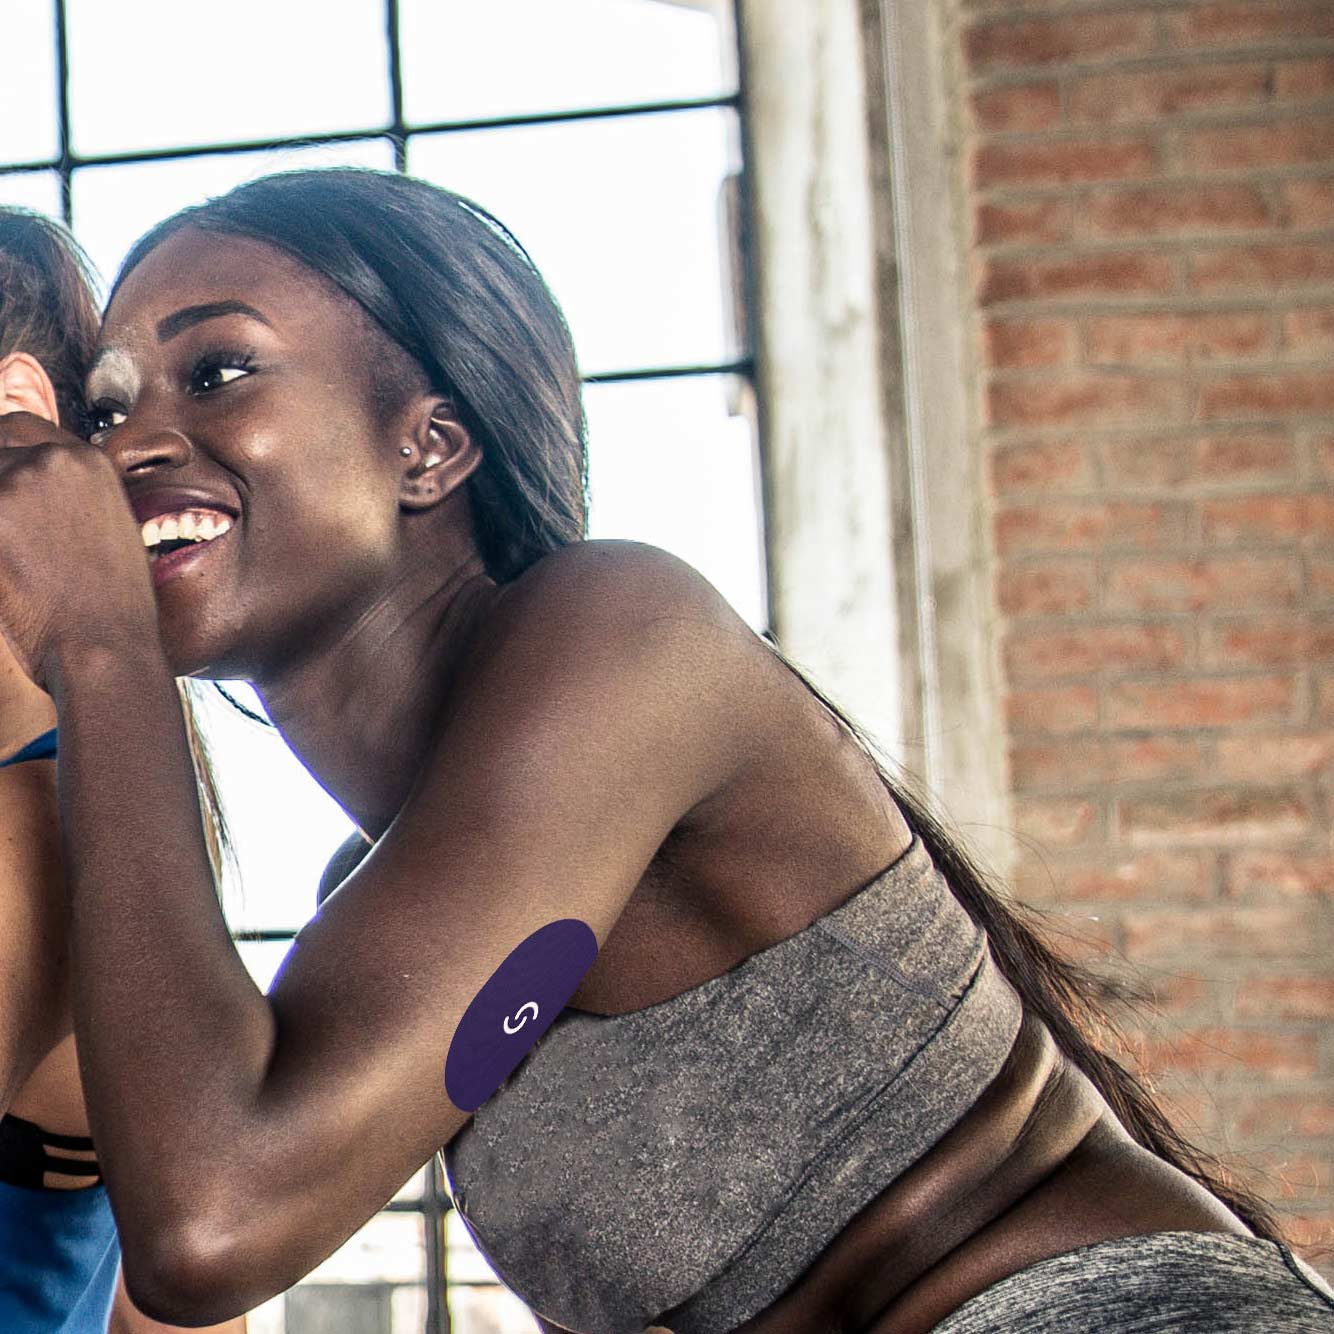 A black woman is wearing a grey sports bra and a CGM with a Signos sports cover on her left arm. She's smiling and squatting with her arms bent.